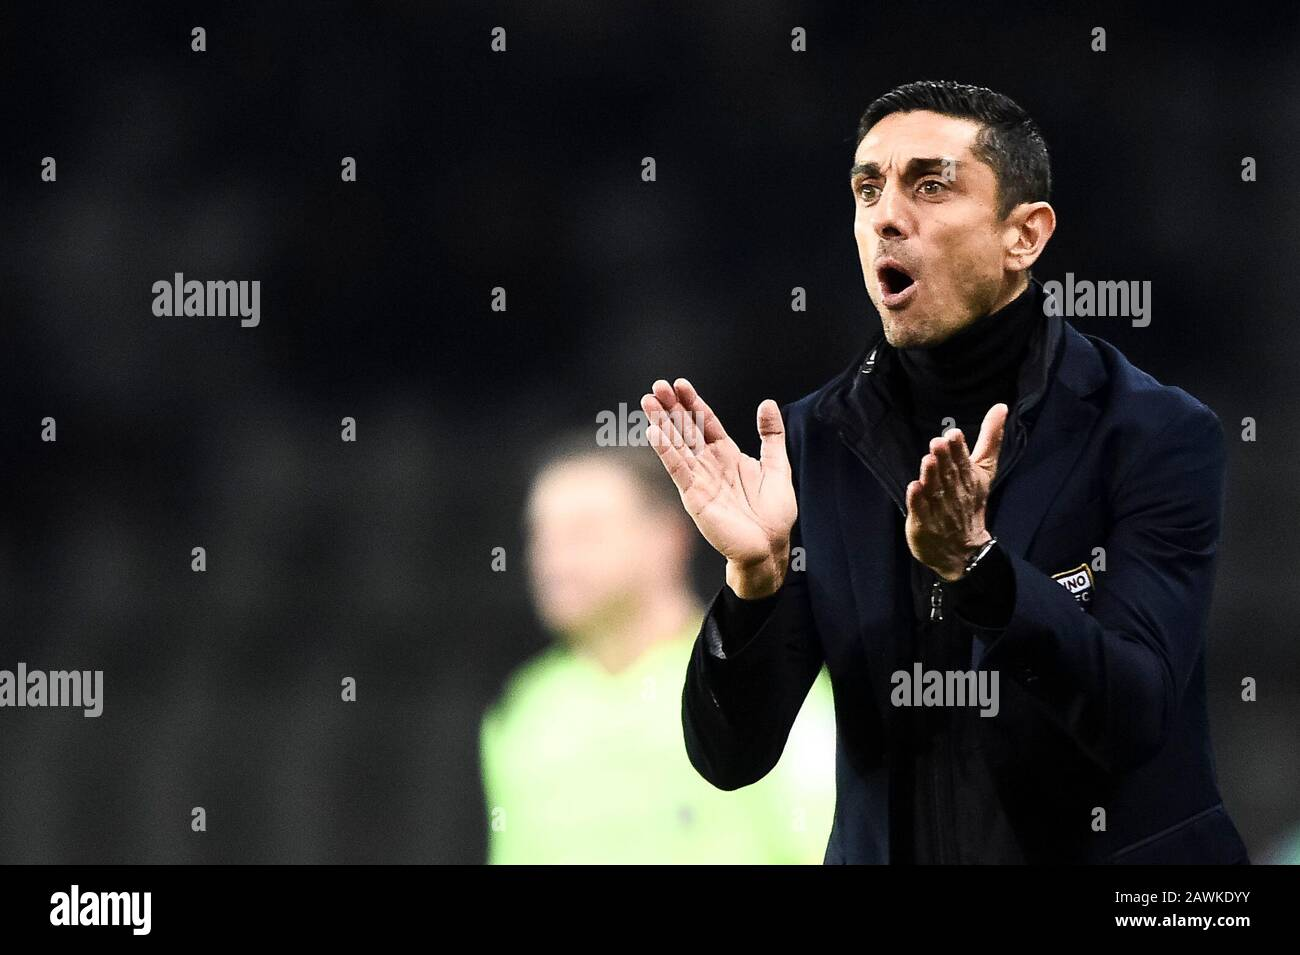 Turin, Italy - 08 February, 2020: Moreno Longo, head coach of Torino FC,  reacts during the Serie A football match between Torino FC and UC Sampdoria. Credit: Nicolò Campo/Alamy Live News Stock Photo